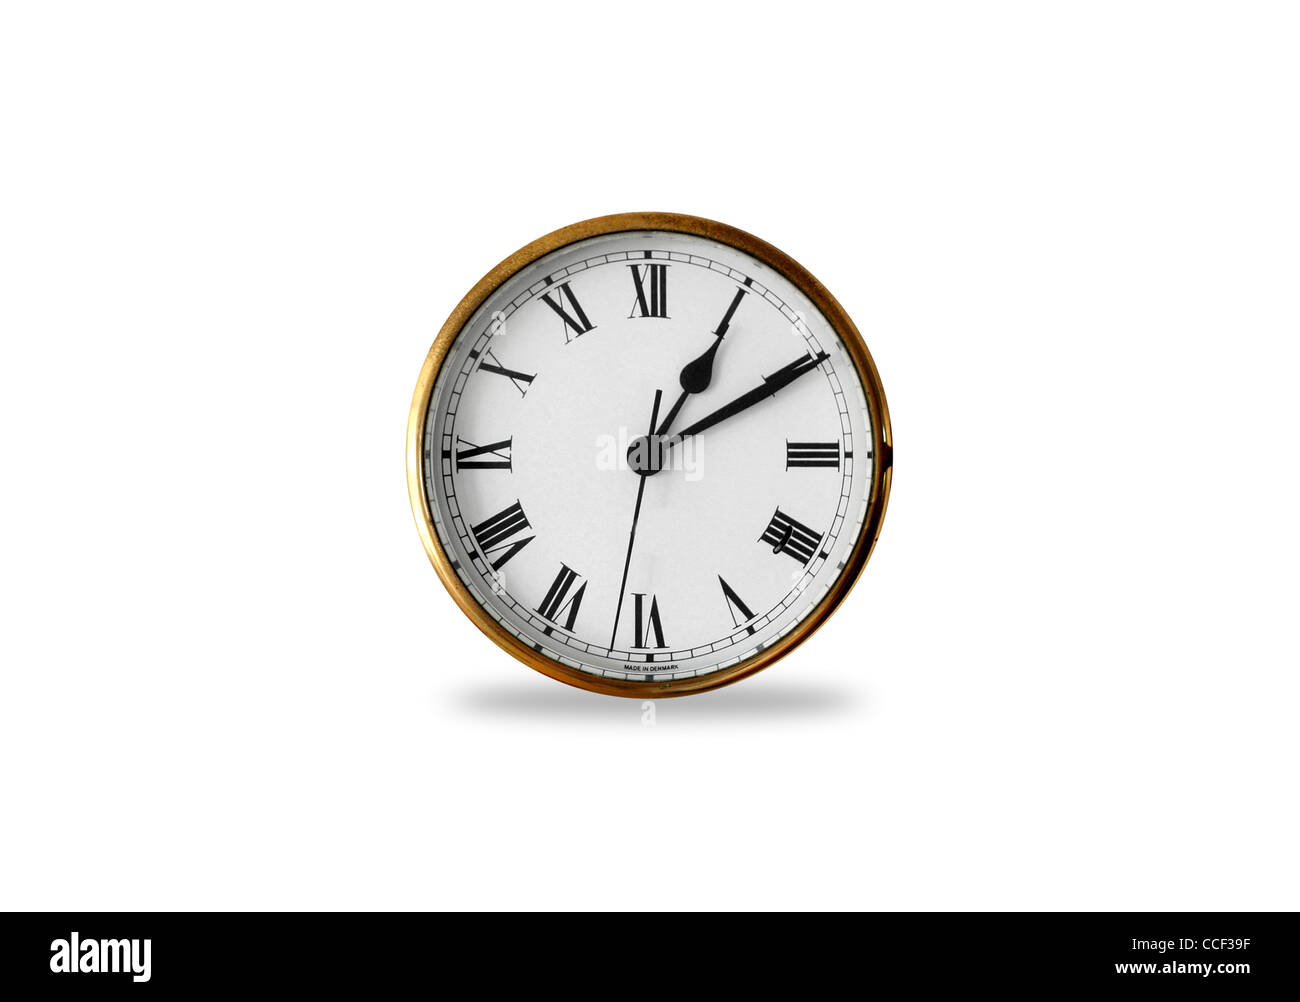 Old clock - Stock Image